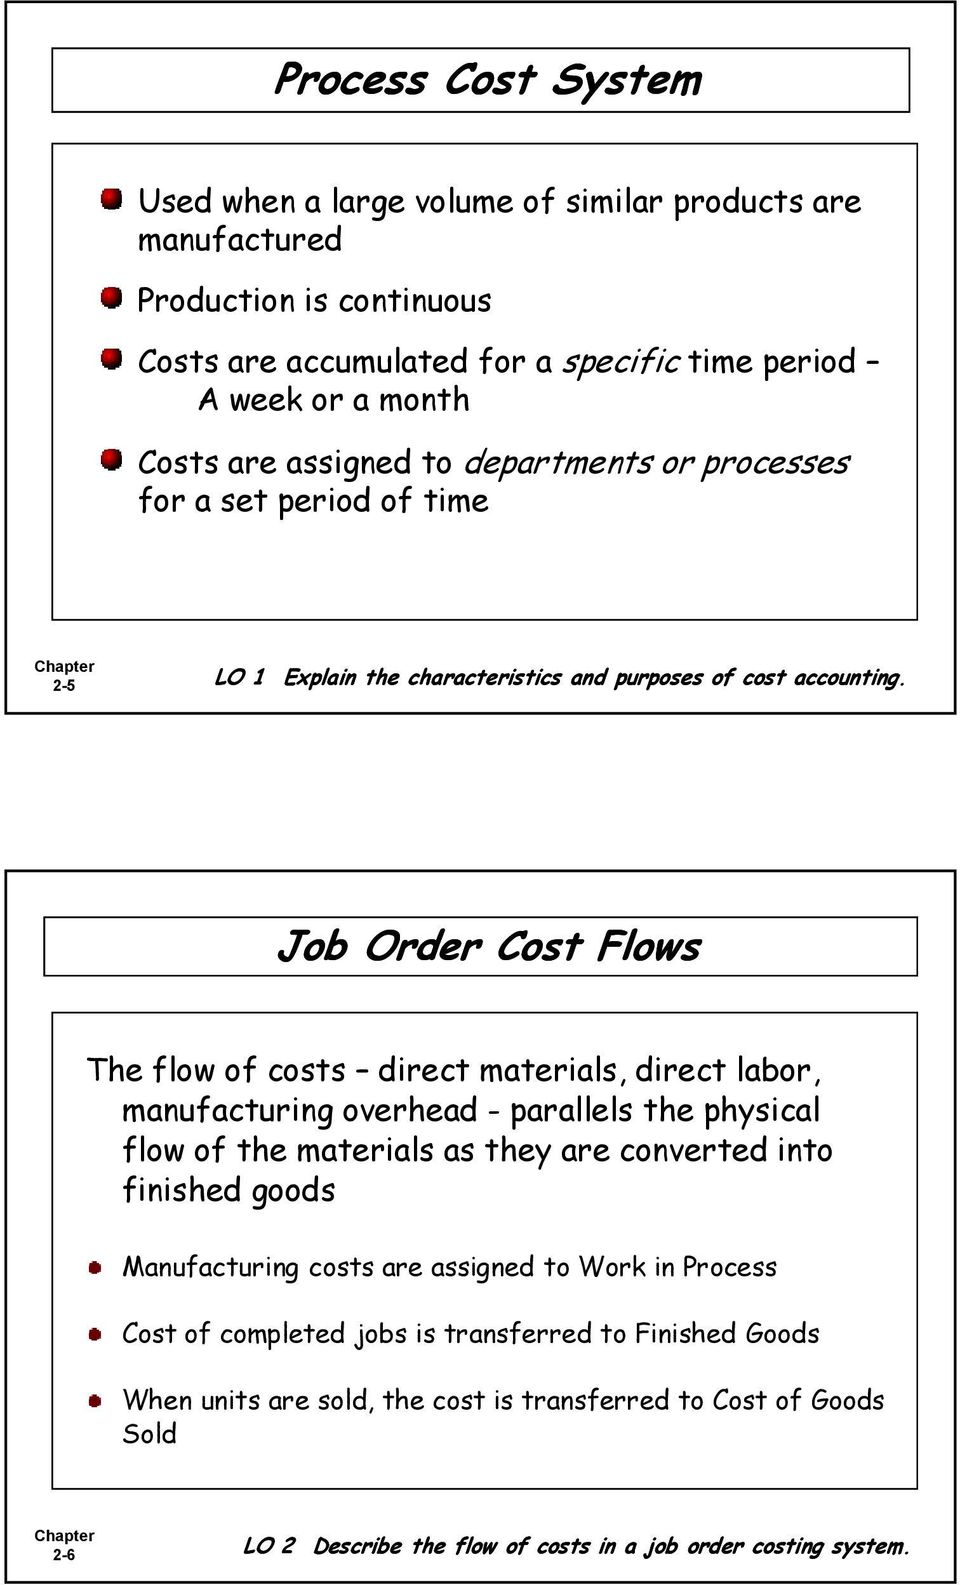 Job Order Cost Flows The flow of costs direct materials, direct labor, manufacturing overhead - parallels the physical flow of the materials as they are converted into finished goods